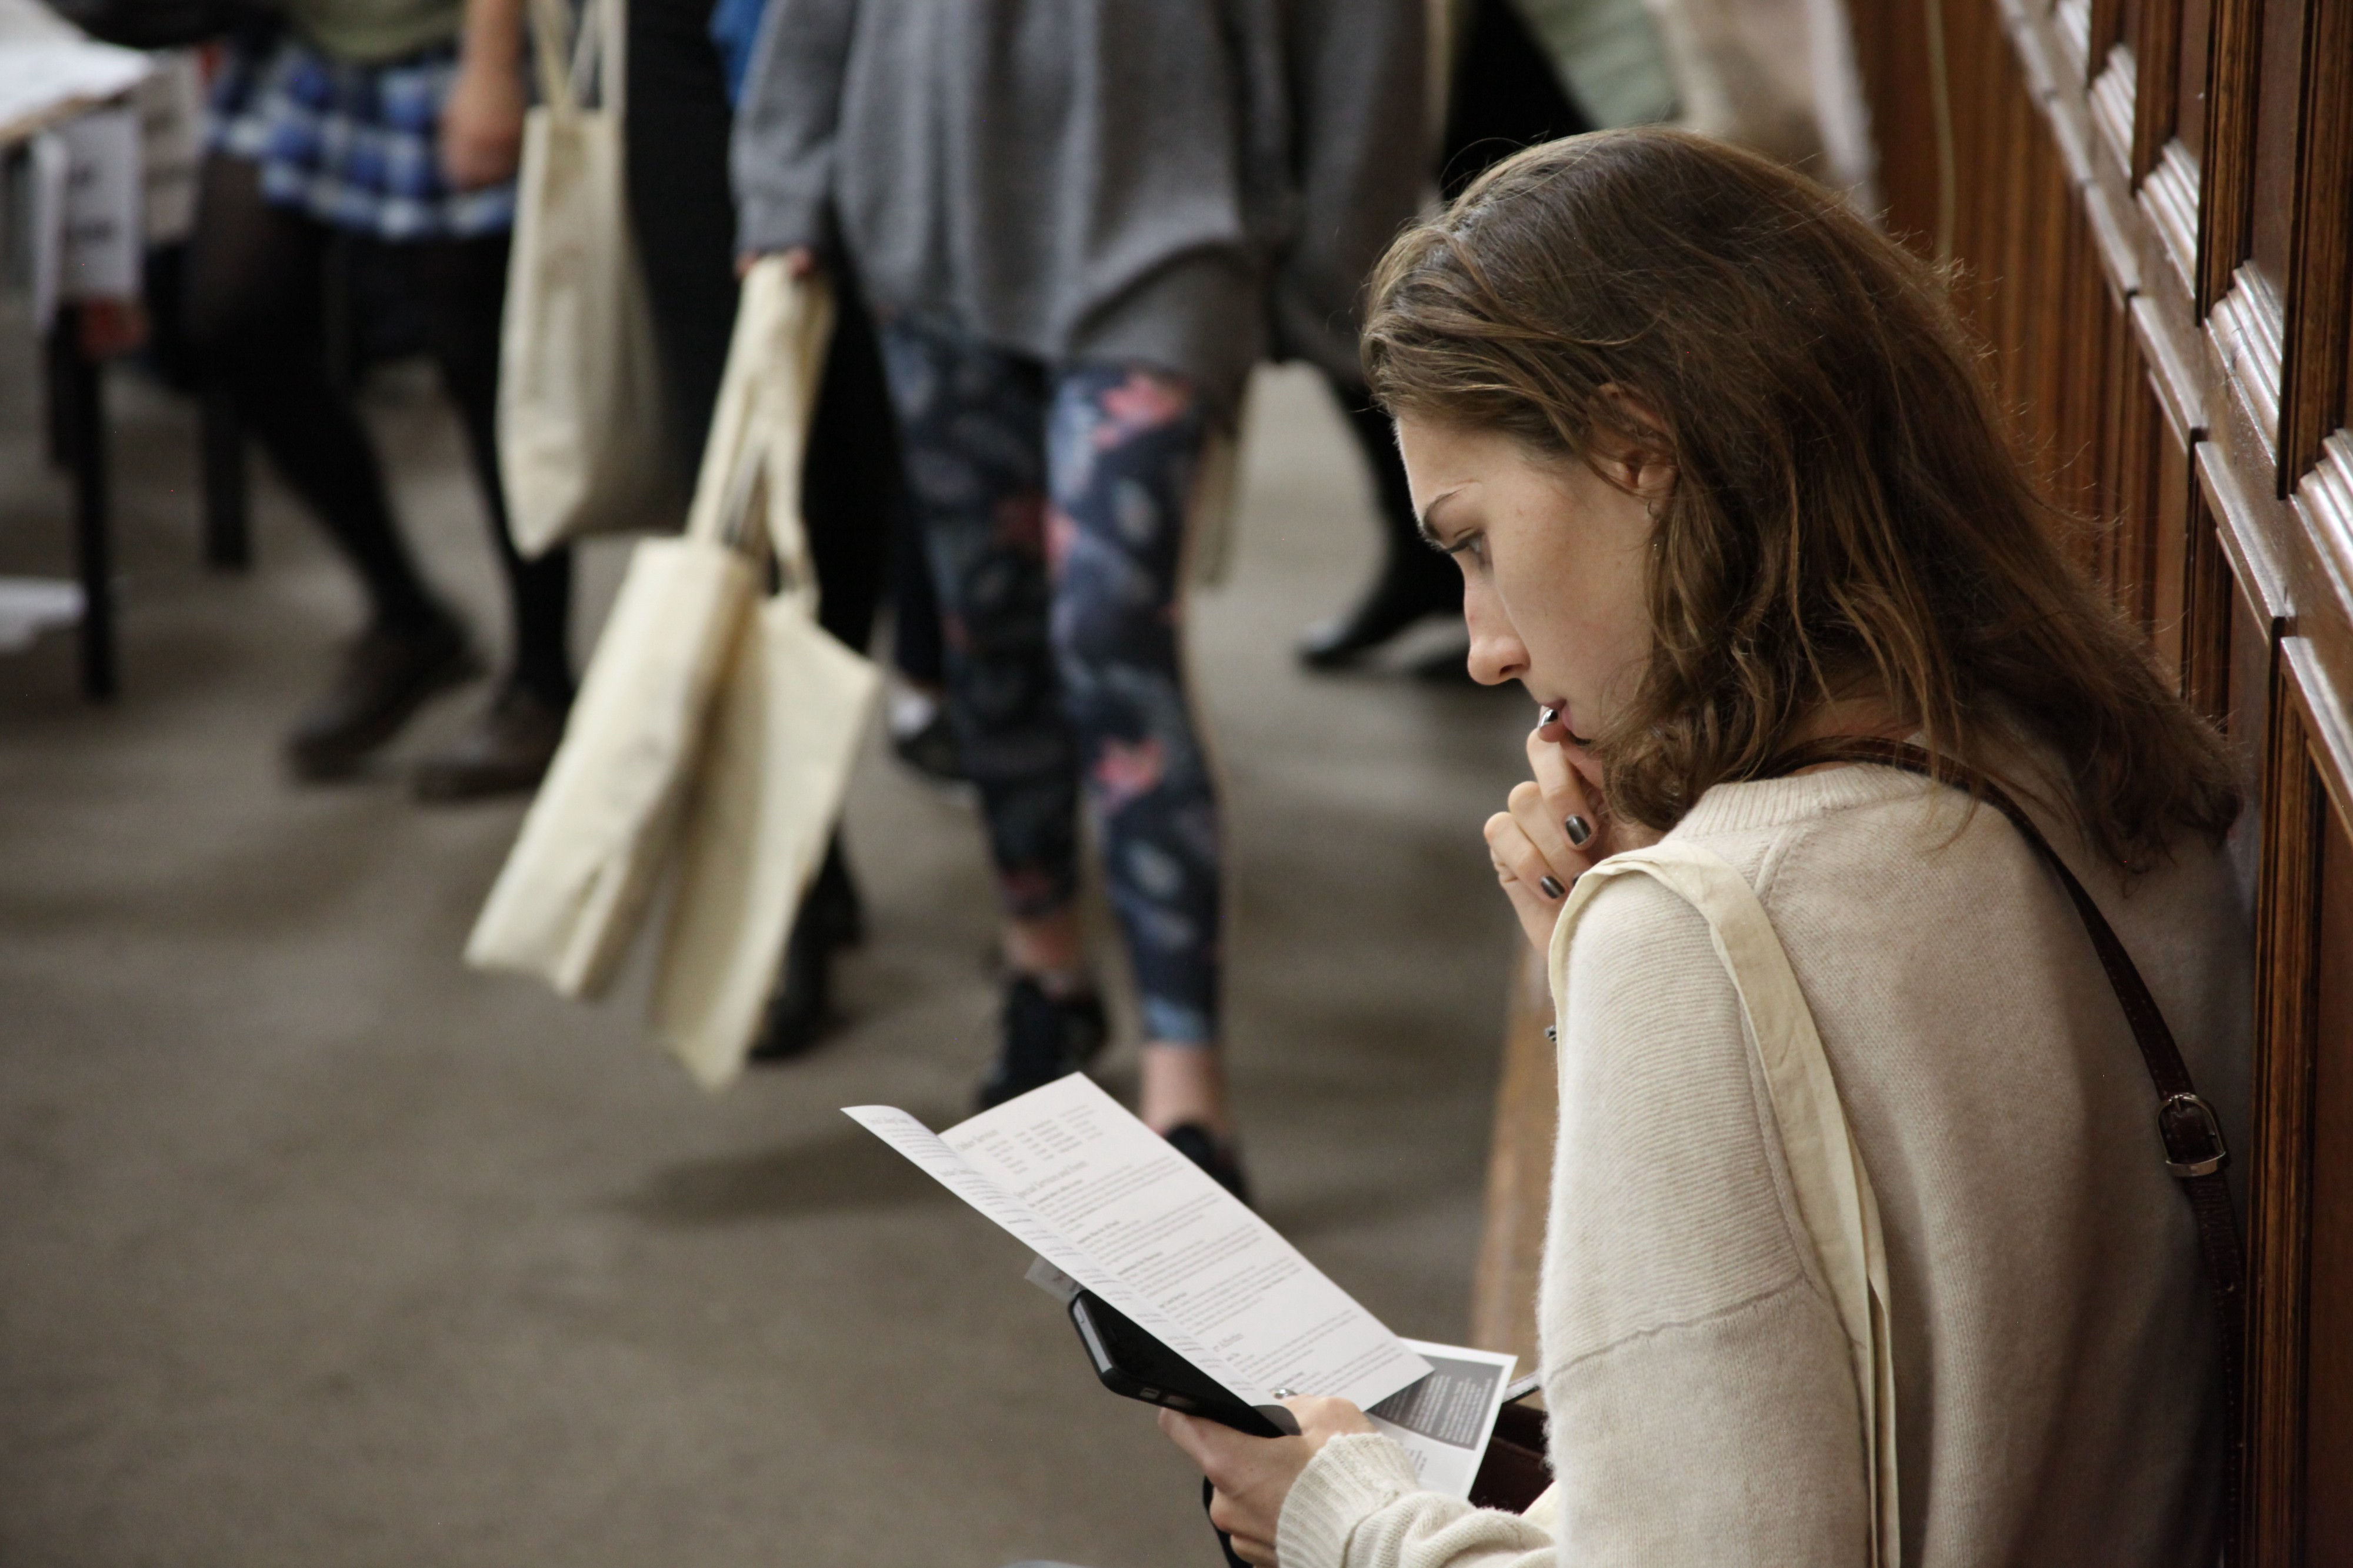 A woman reading a piece of paper.